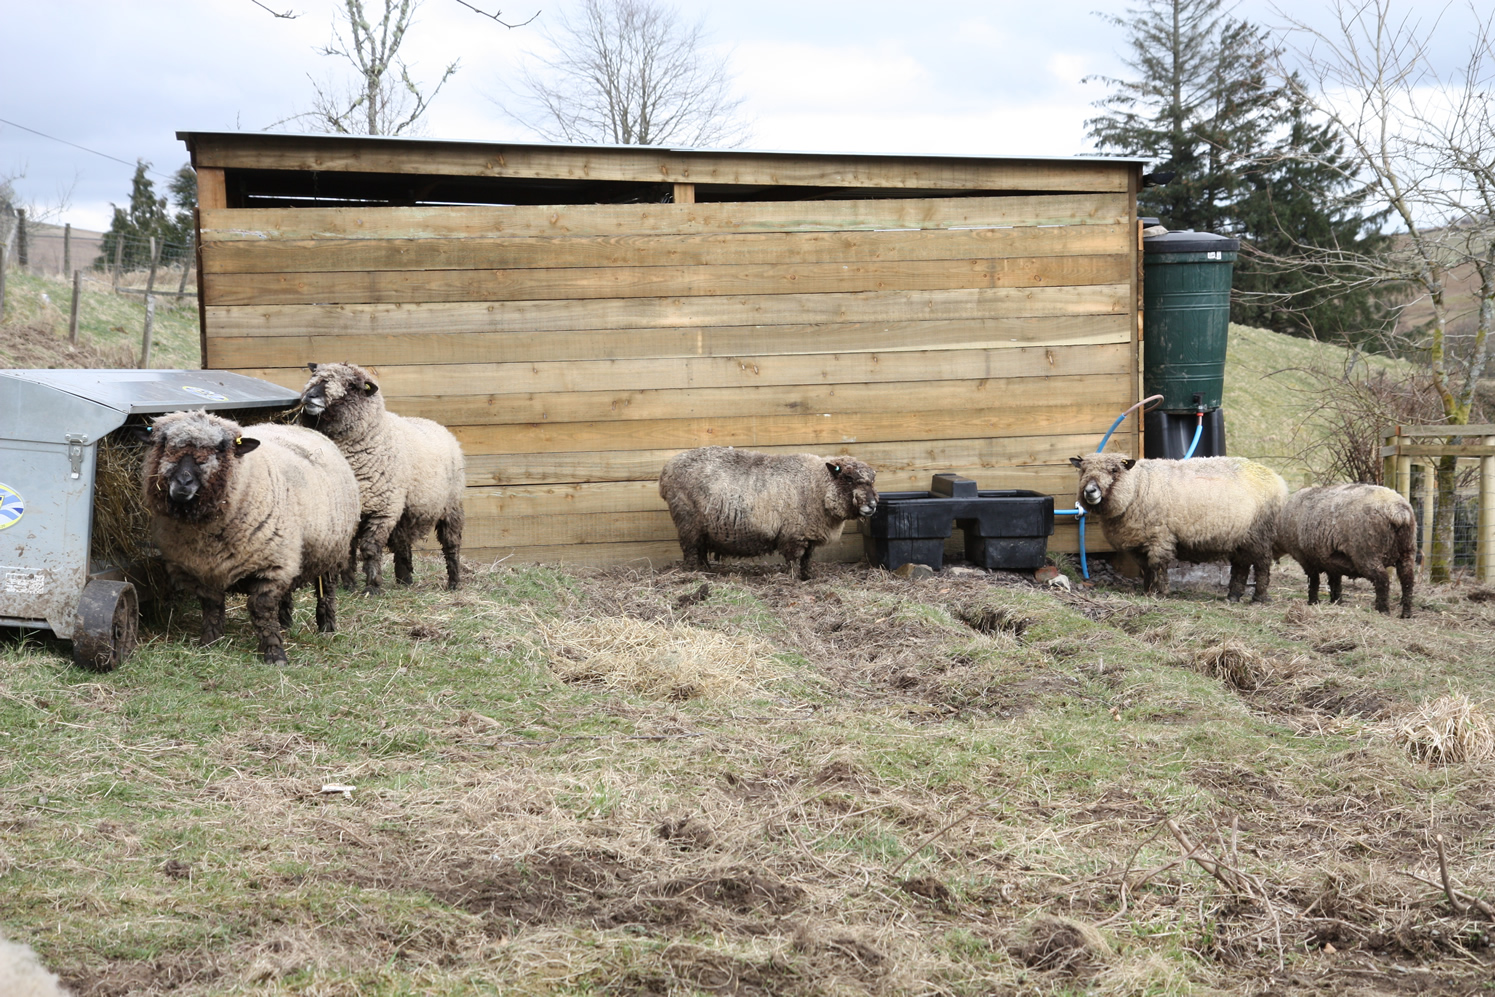 Sheep checking out new facilities